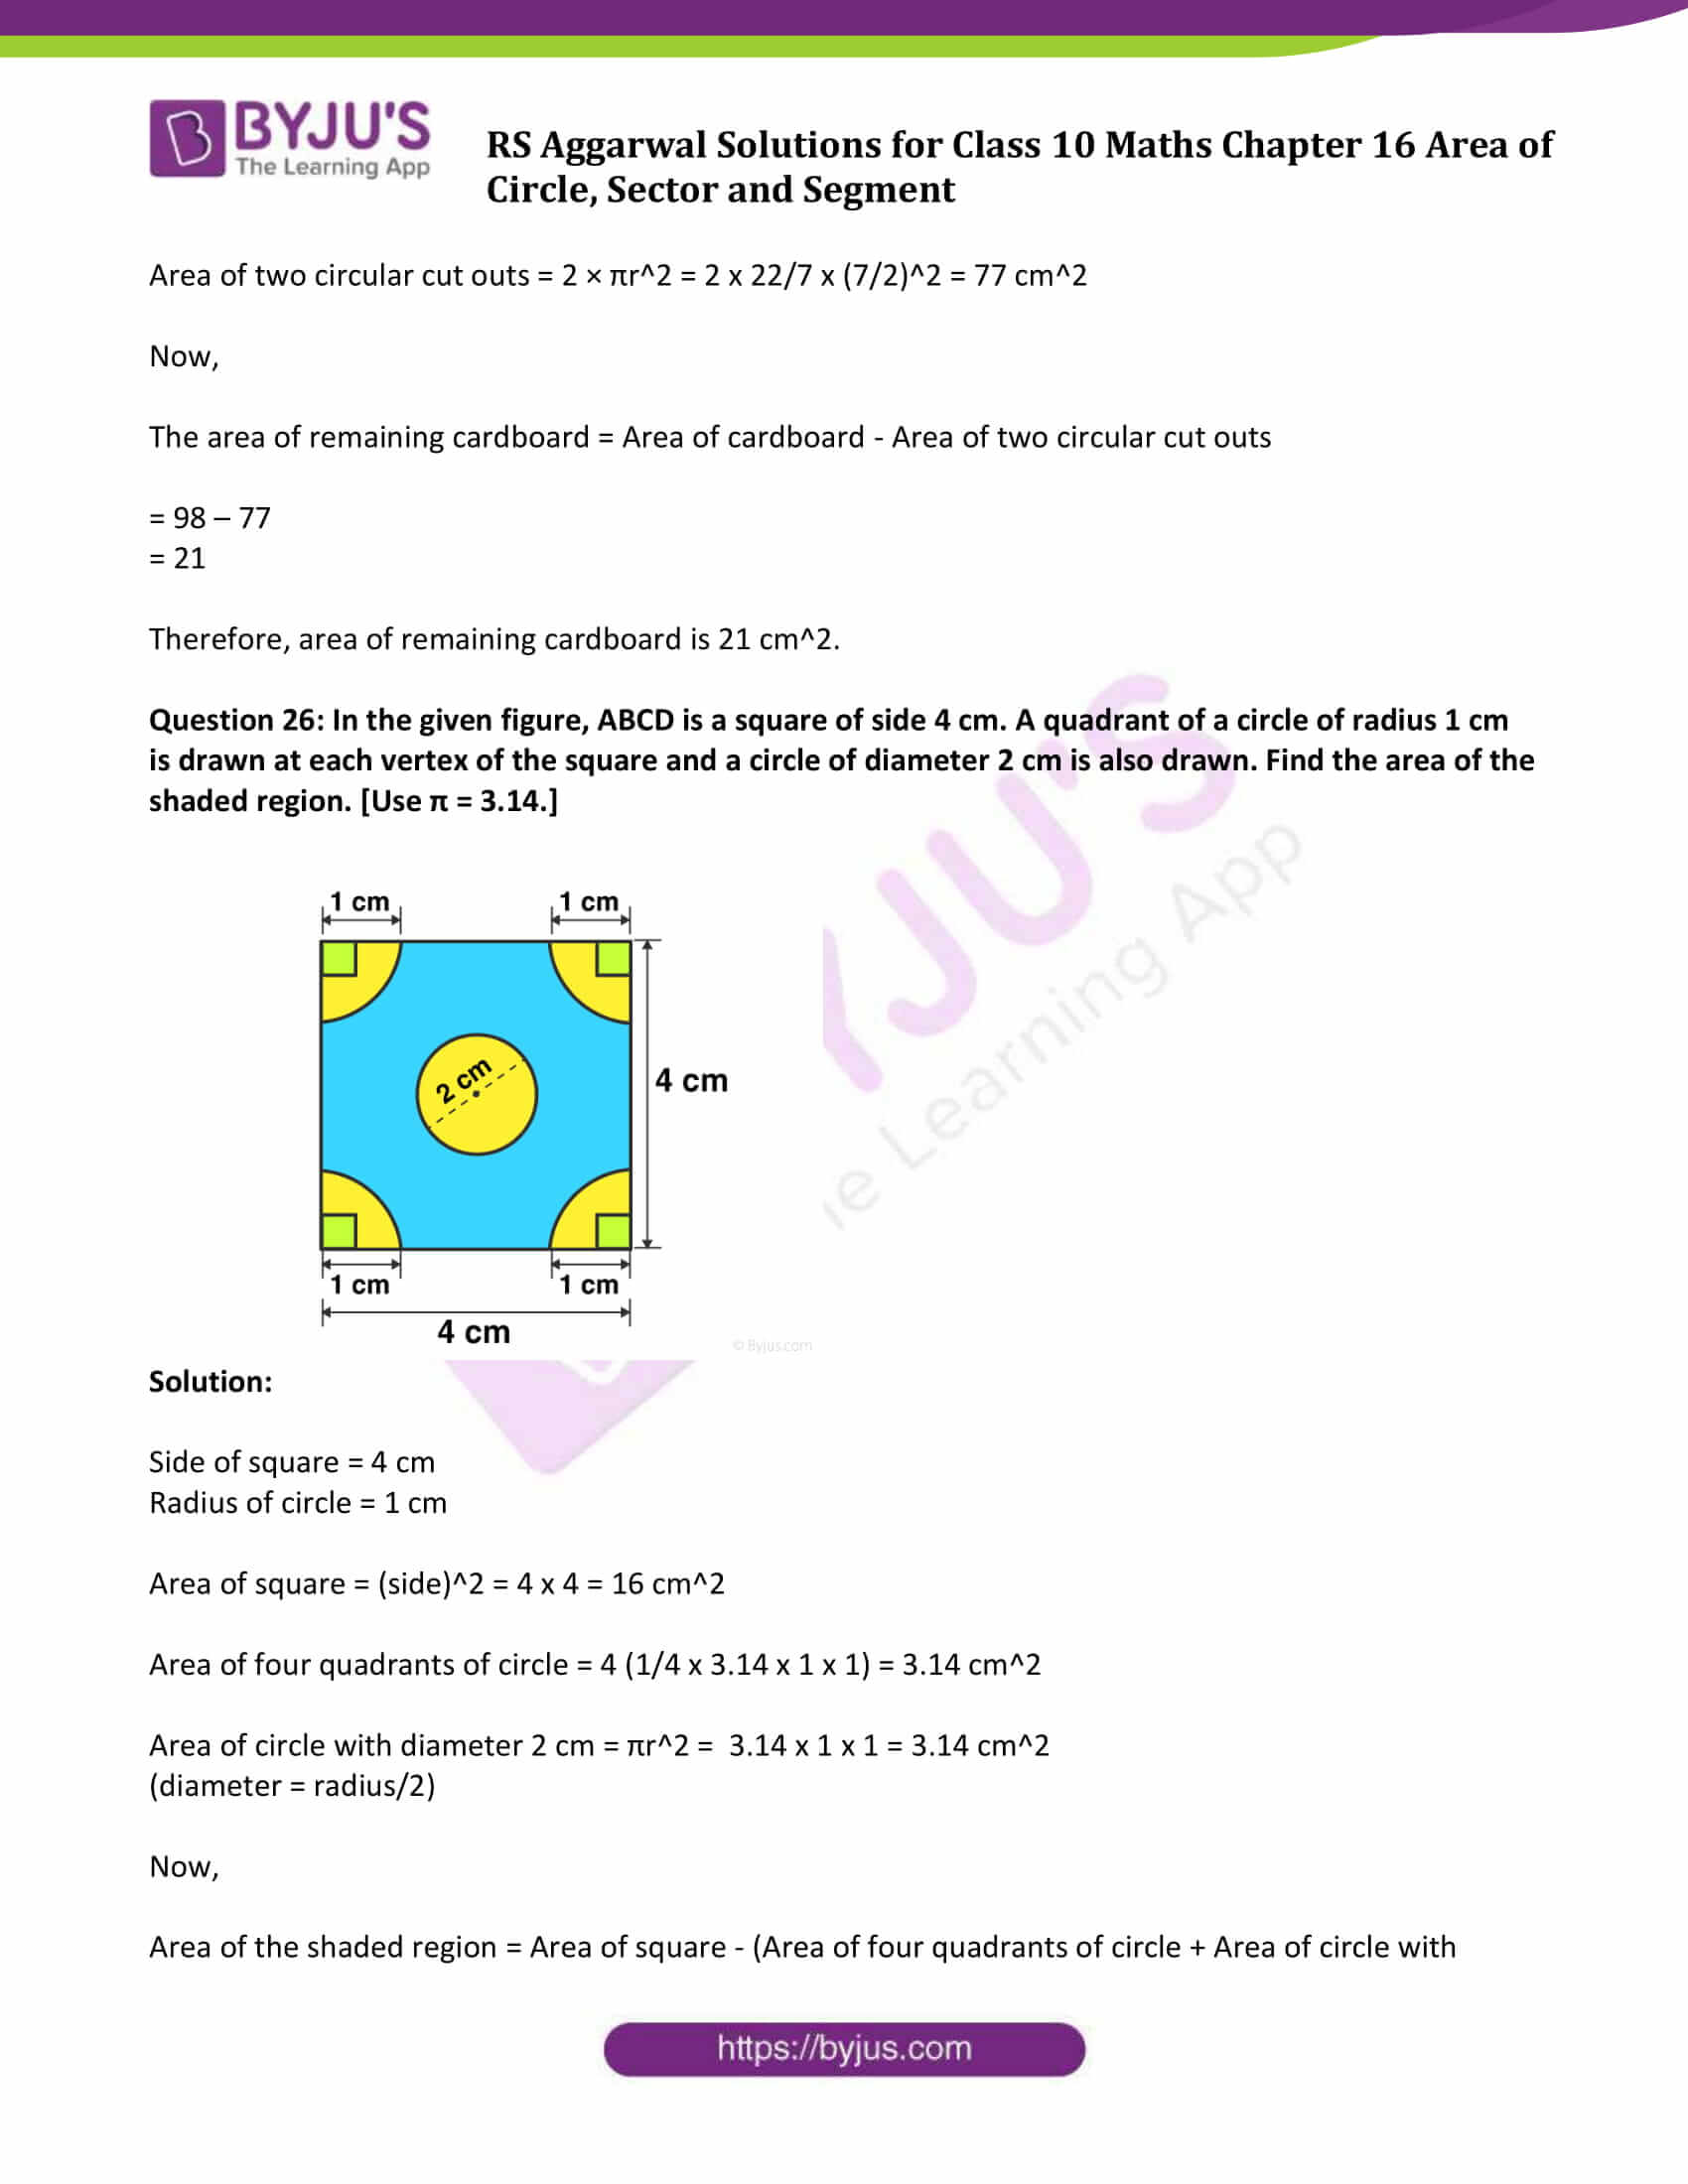 RS Aggarwal Sol class 10 Maths Chapter 16 Exercise 16B